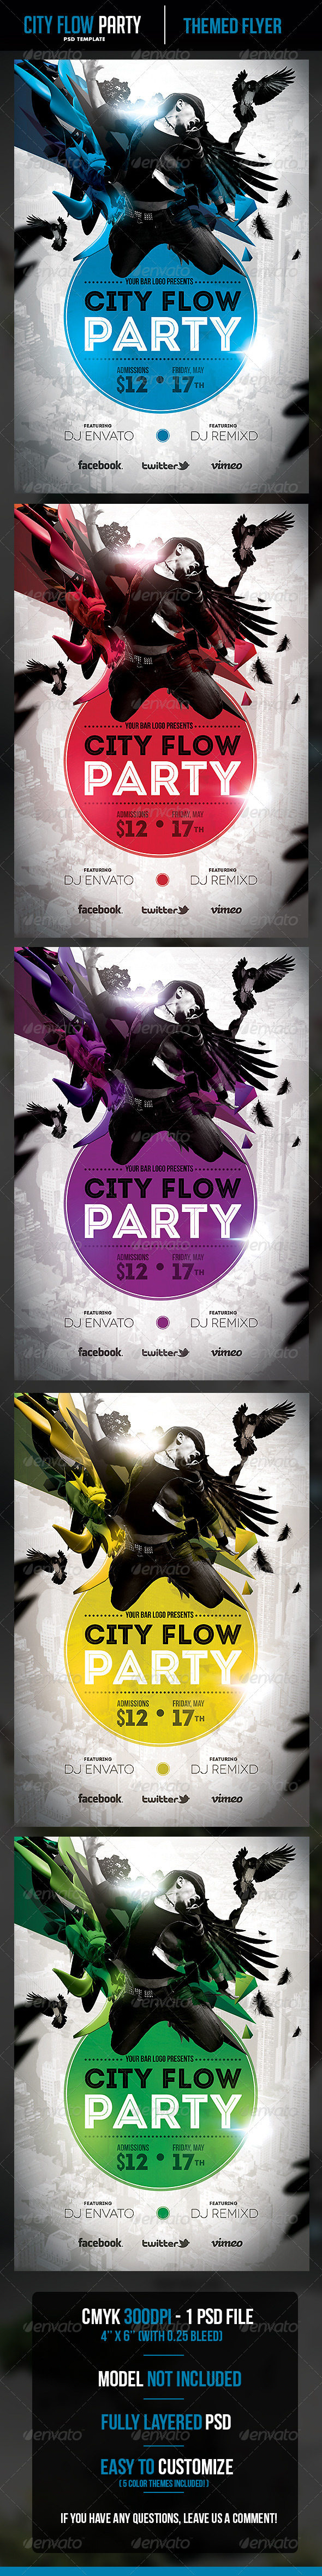 GraphicRiver City Flow Party Flyer Template 5310420